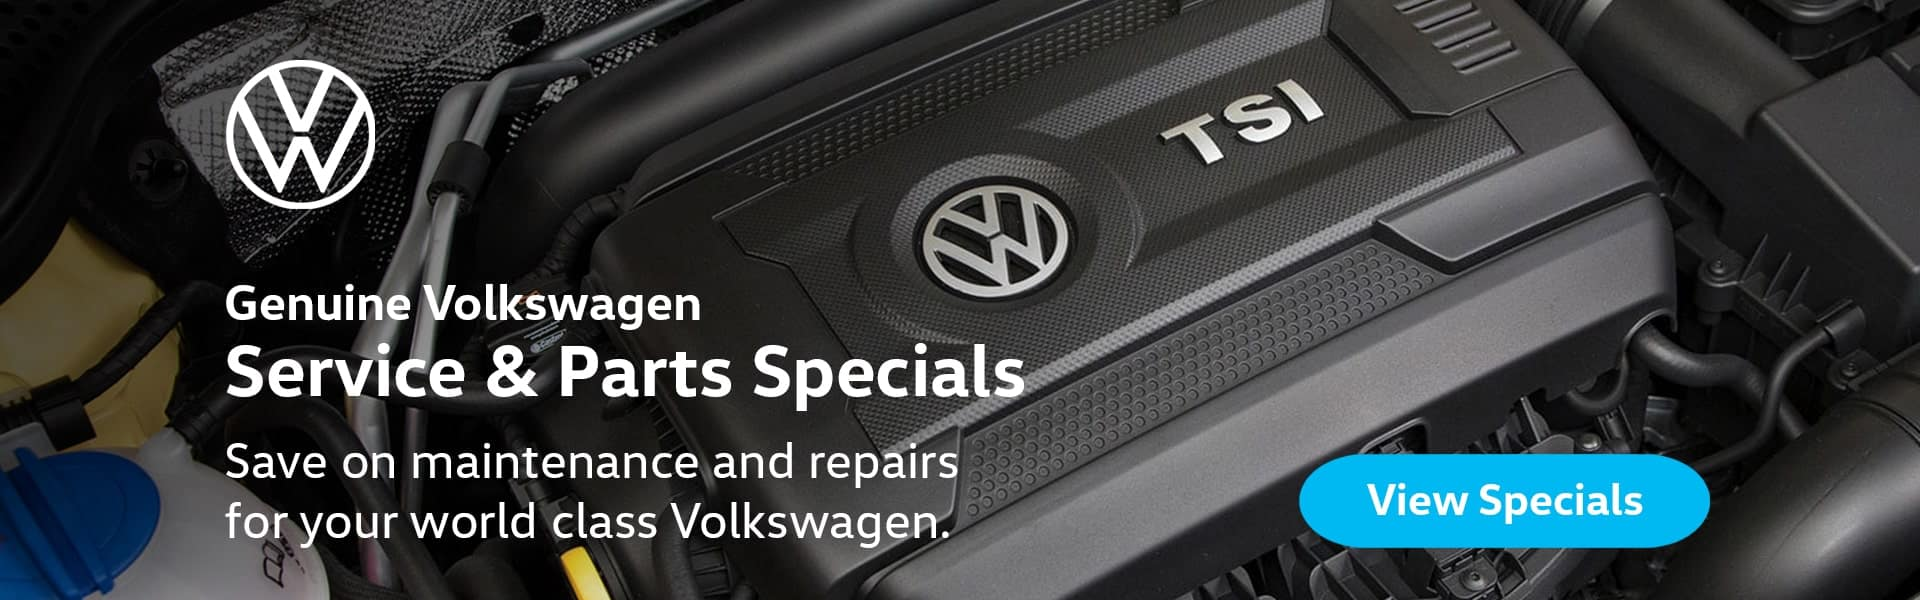 volkswagen of gainesville new vws used car dealership volkswagen of gainesville new vws